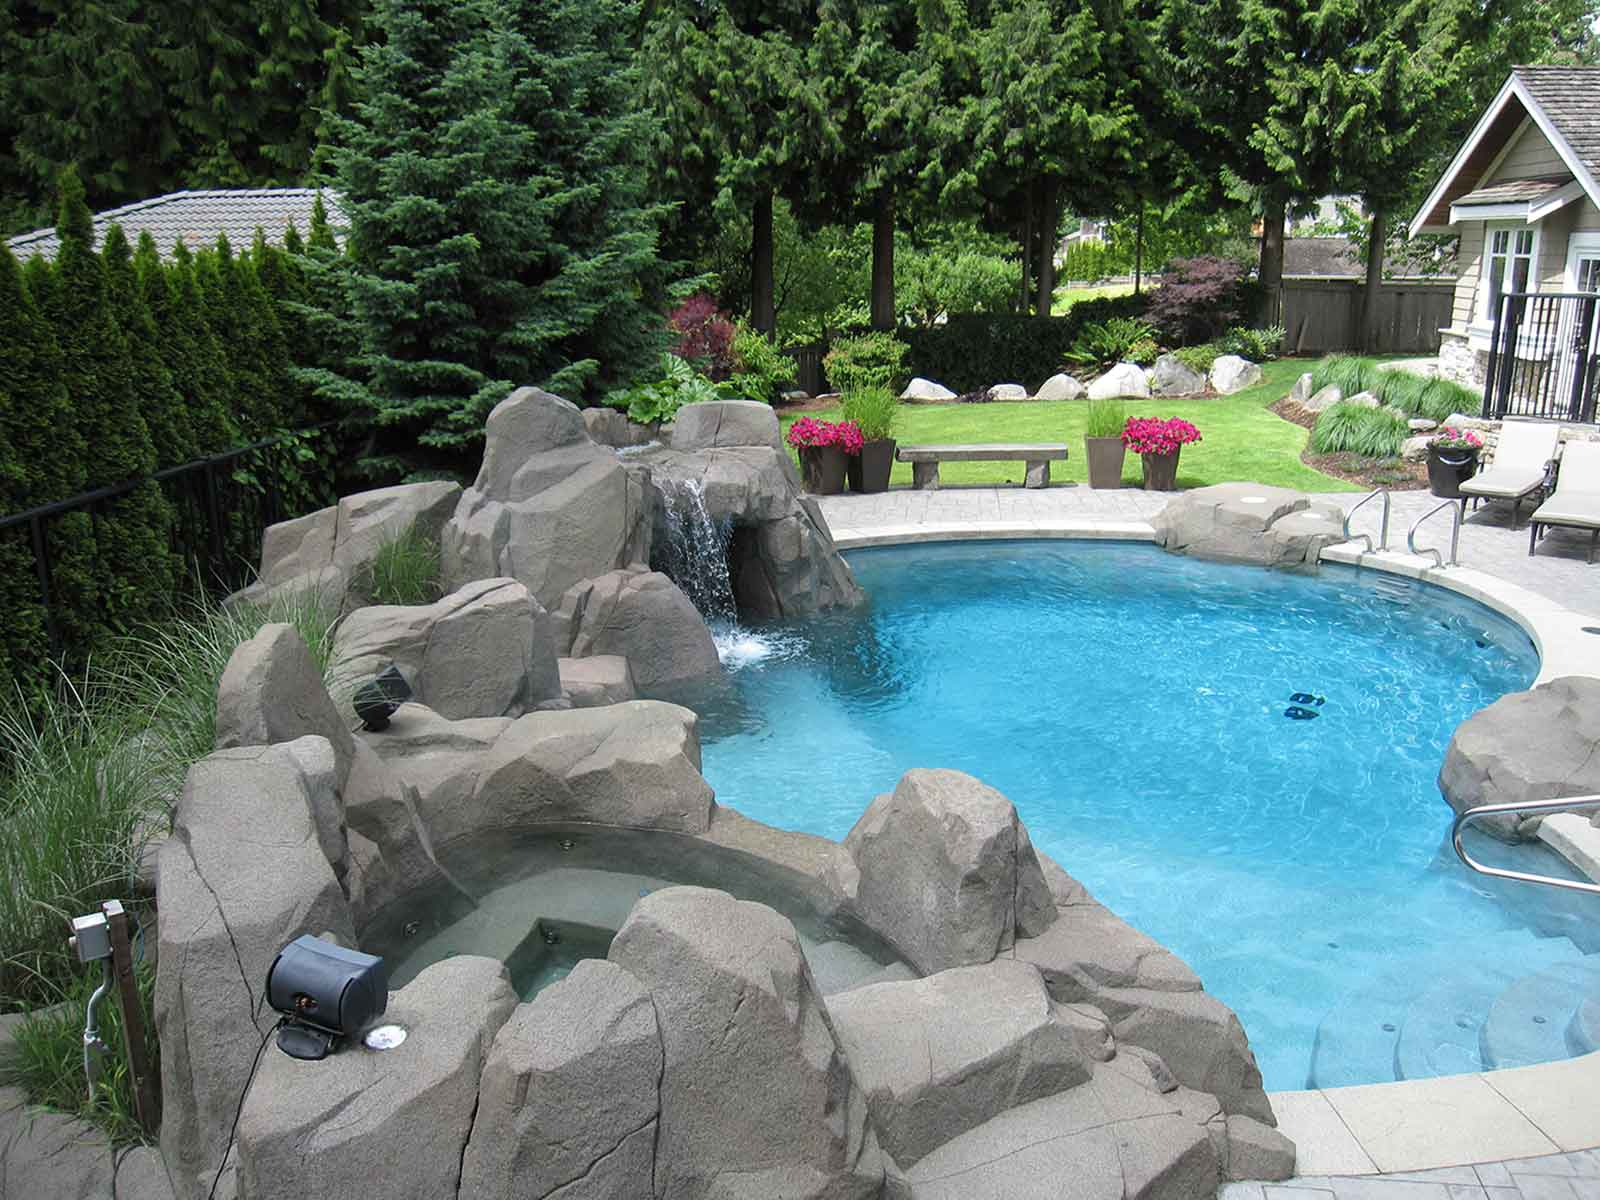 custom designed artificial rock work and in-ground swimming pool